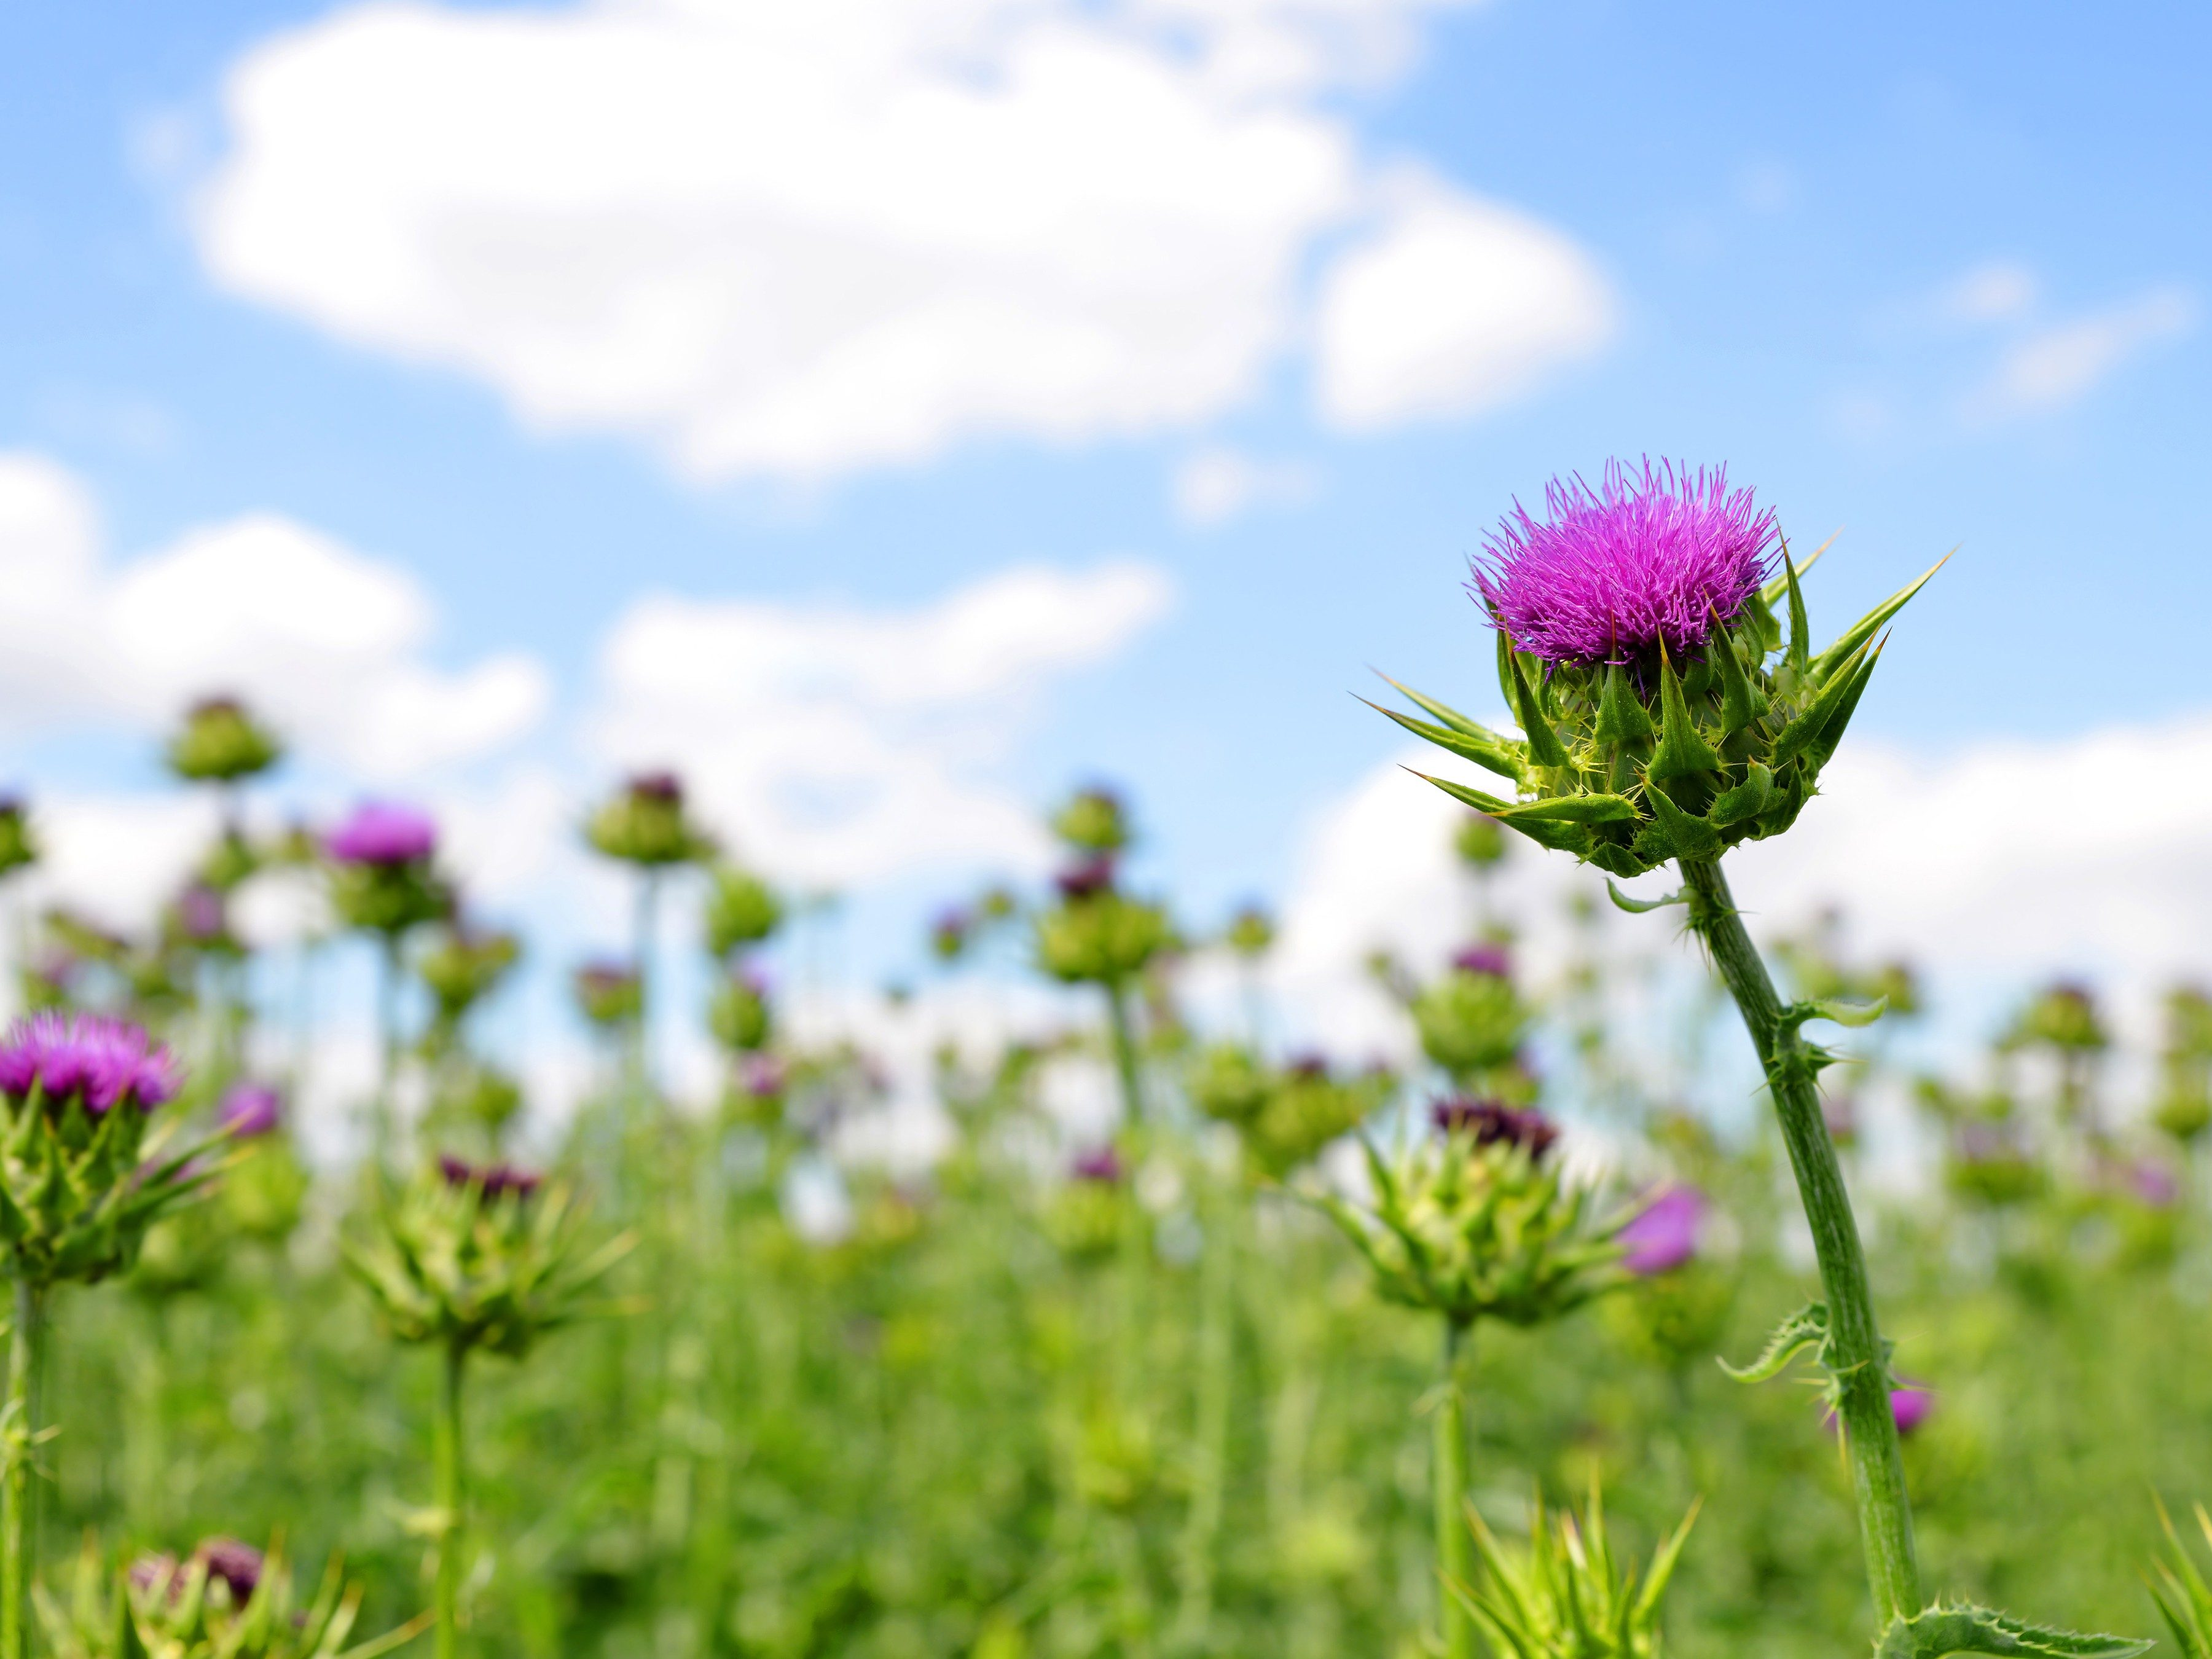 6. Take milk thistle in the lead up to a big party